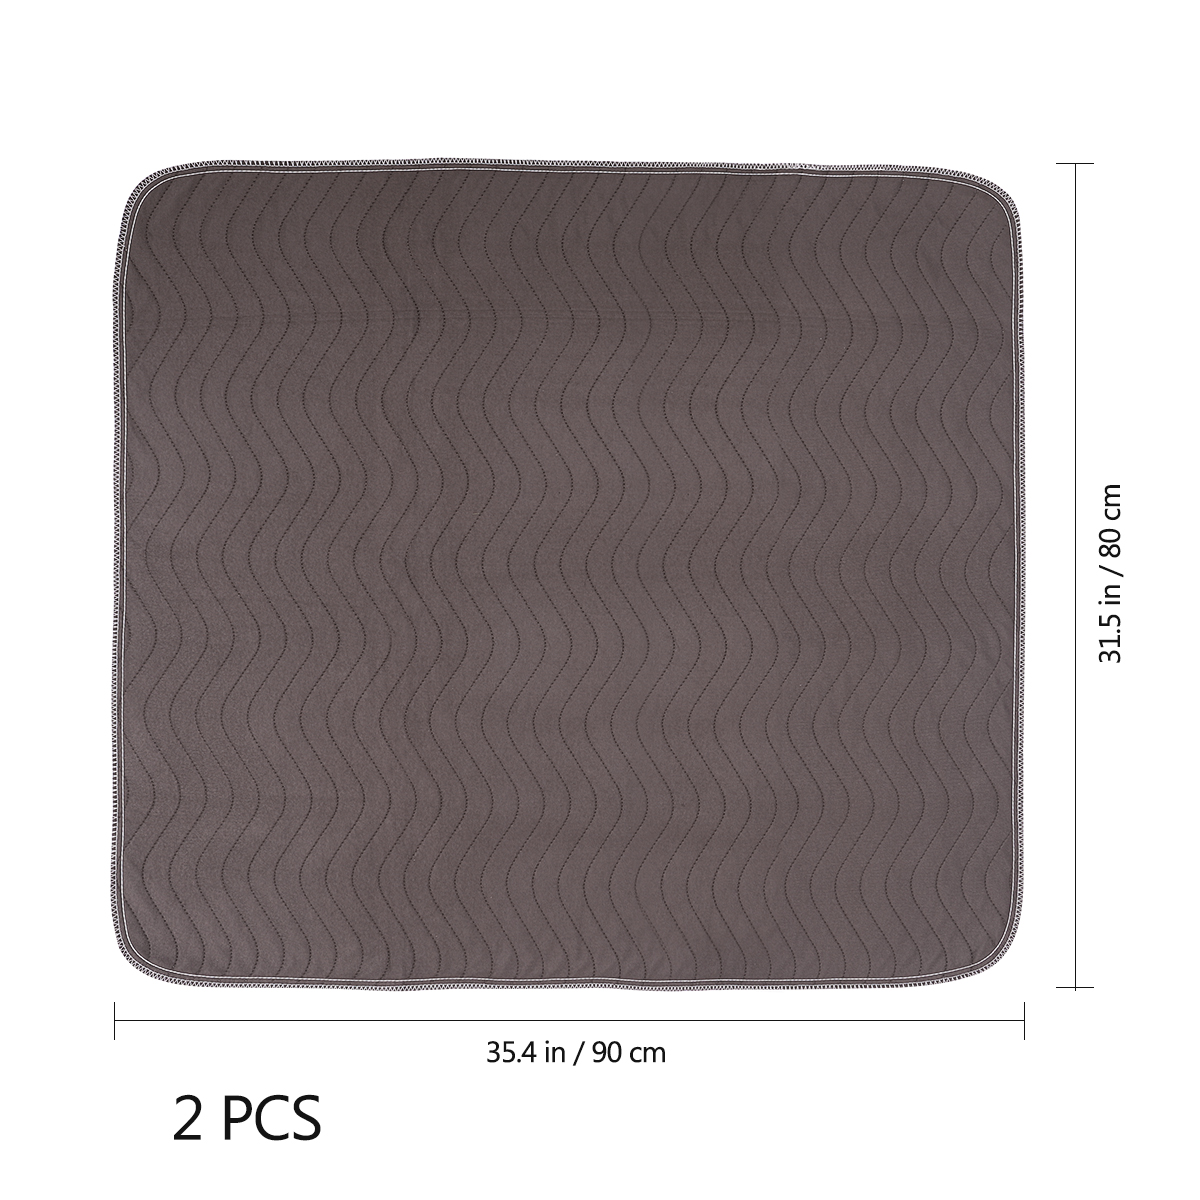 2PCS 90x80CM Dog Small Pet Pee Pads Large Size Reusable Washable Waterproof Fast Absorbing for Bed